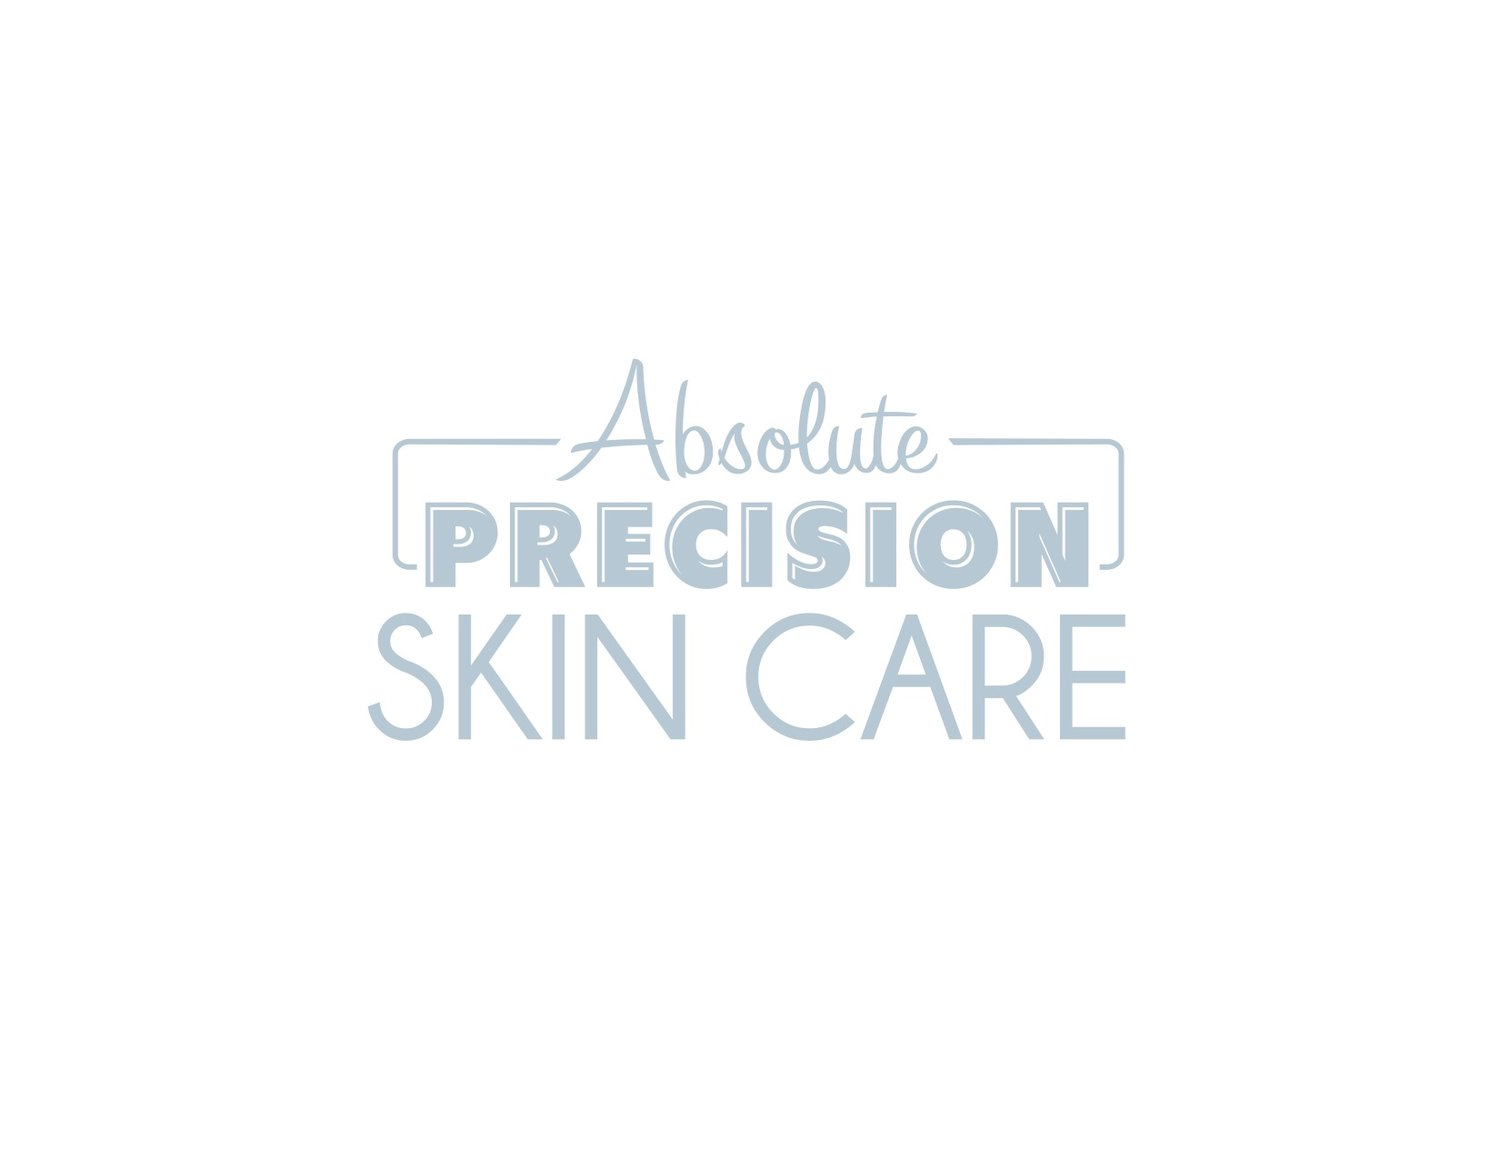 Absolute Precision Skincare